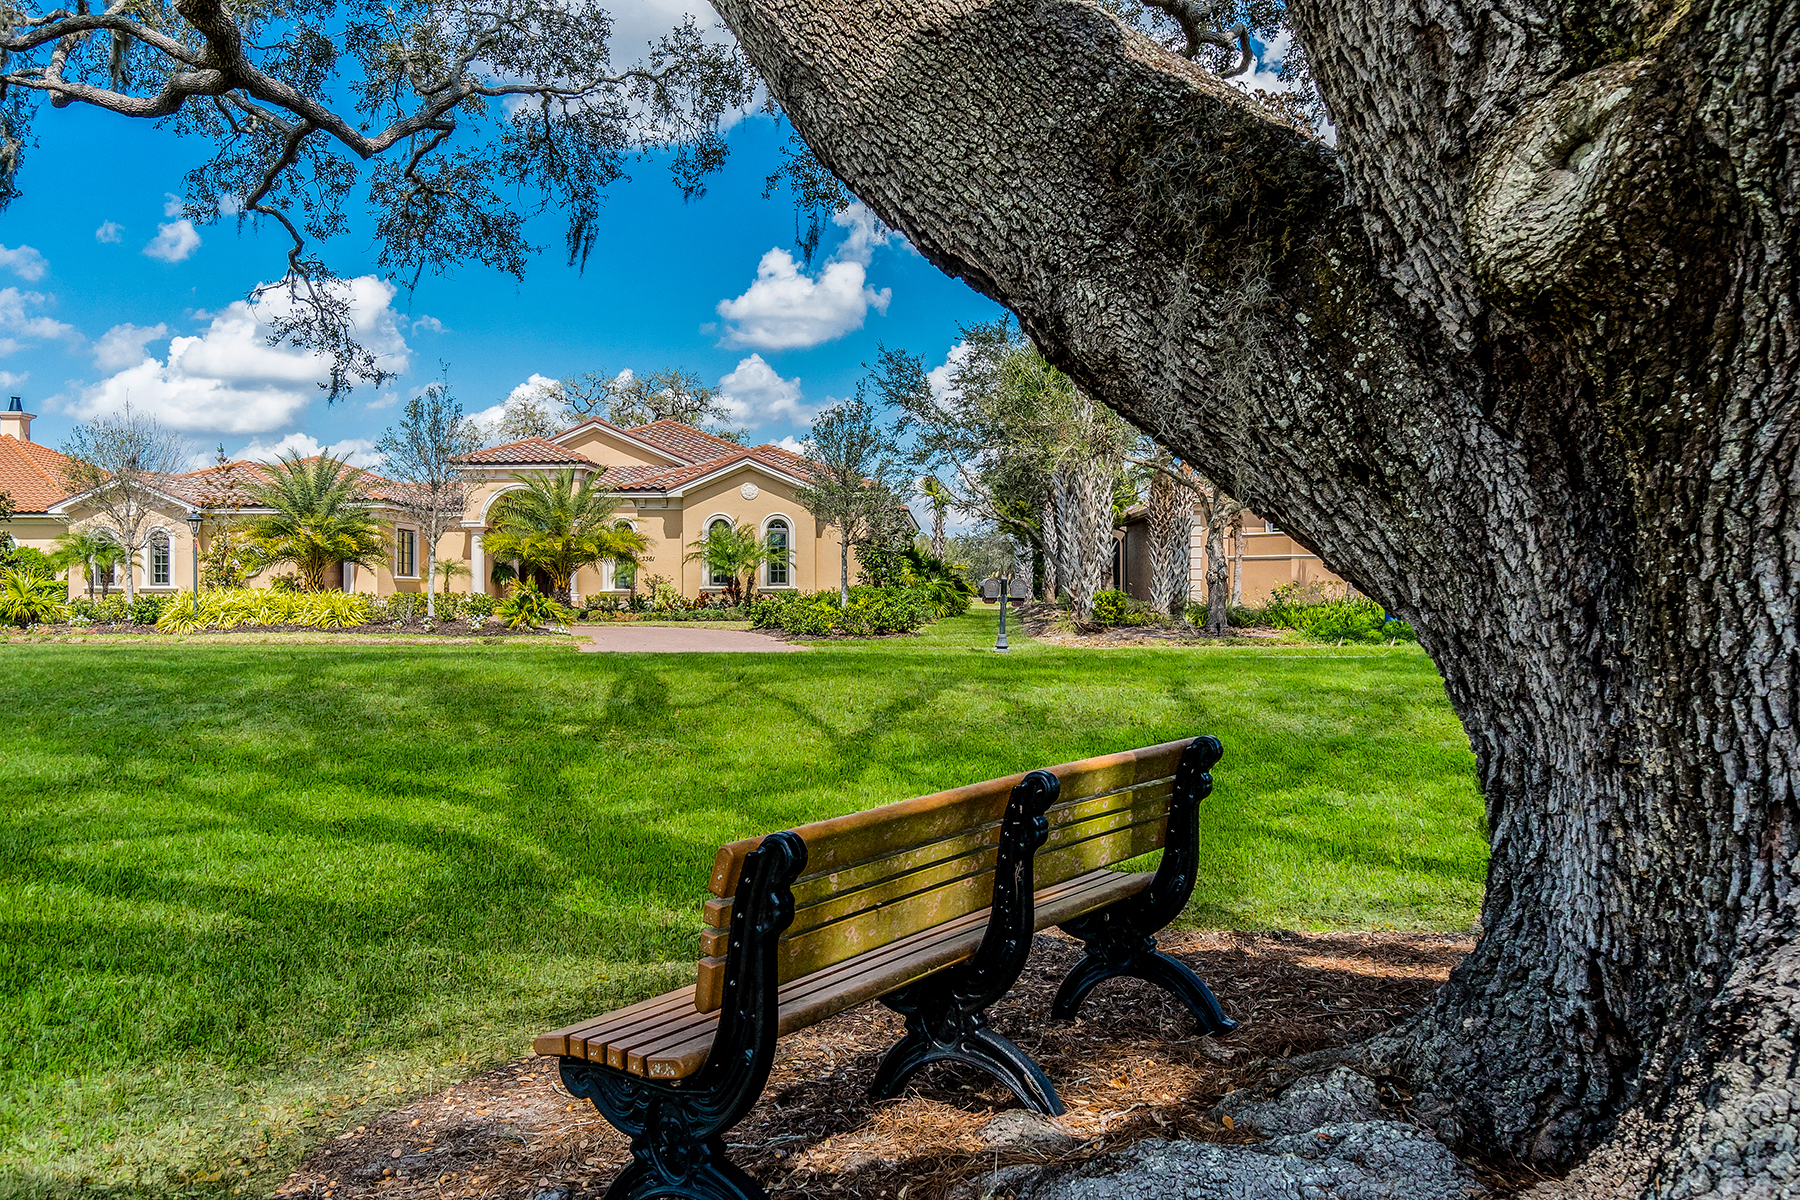 Single Family Home for Sale at FOUNDERS CLUB 3361 Founders Club Dr Sarasota, Florida, 34240 United States